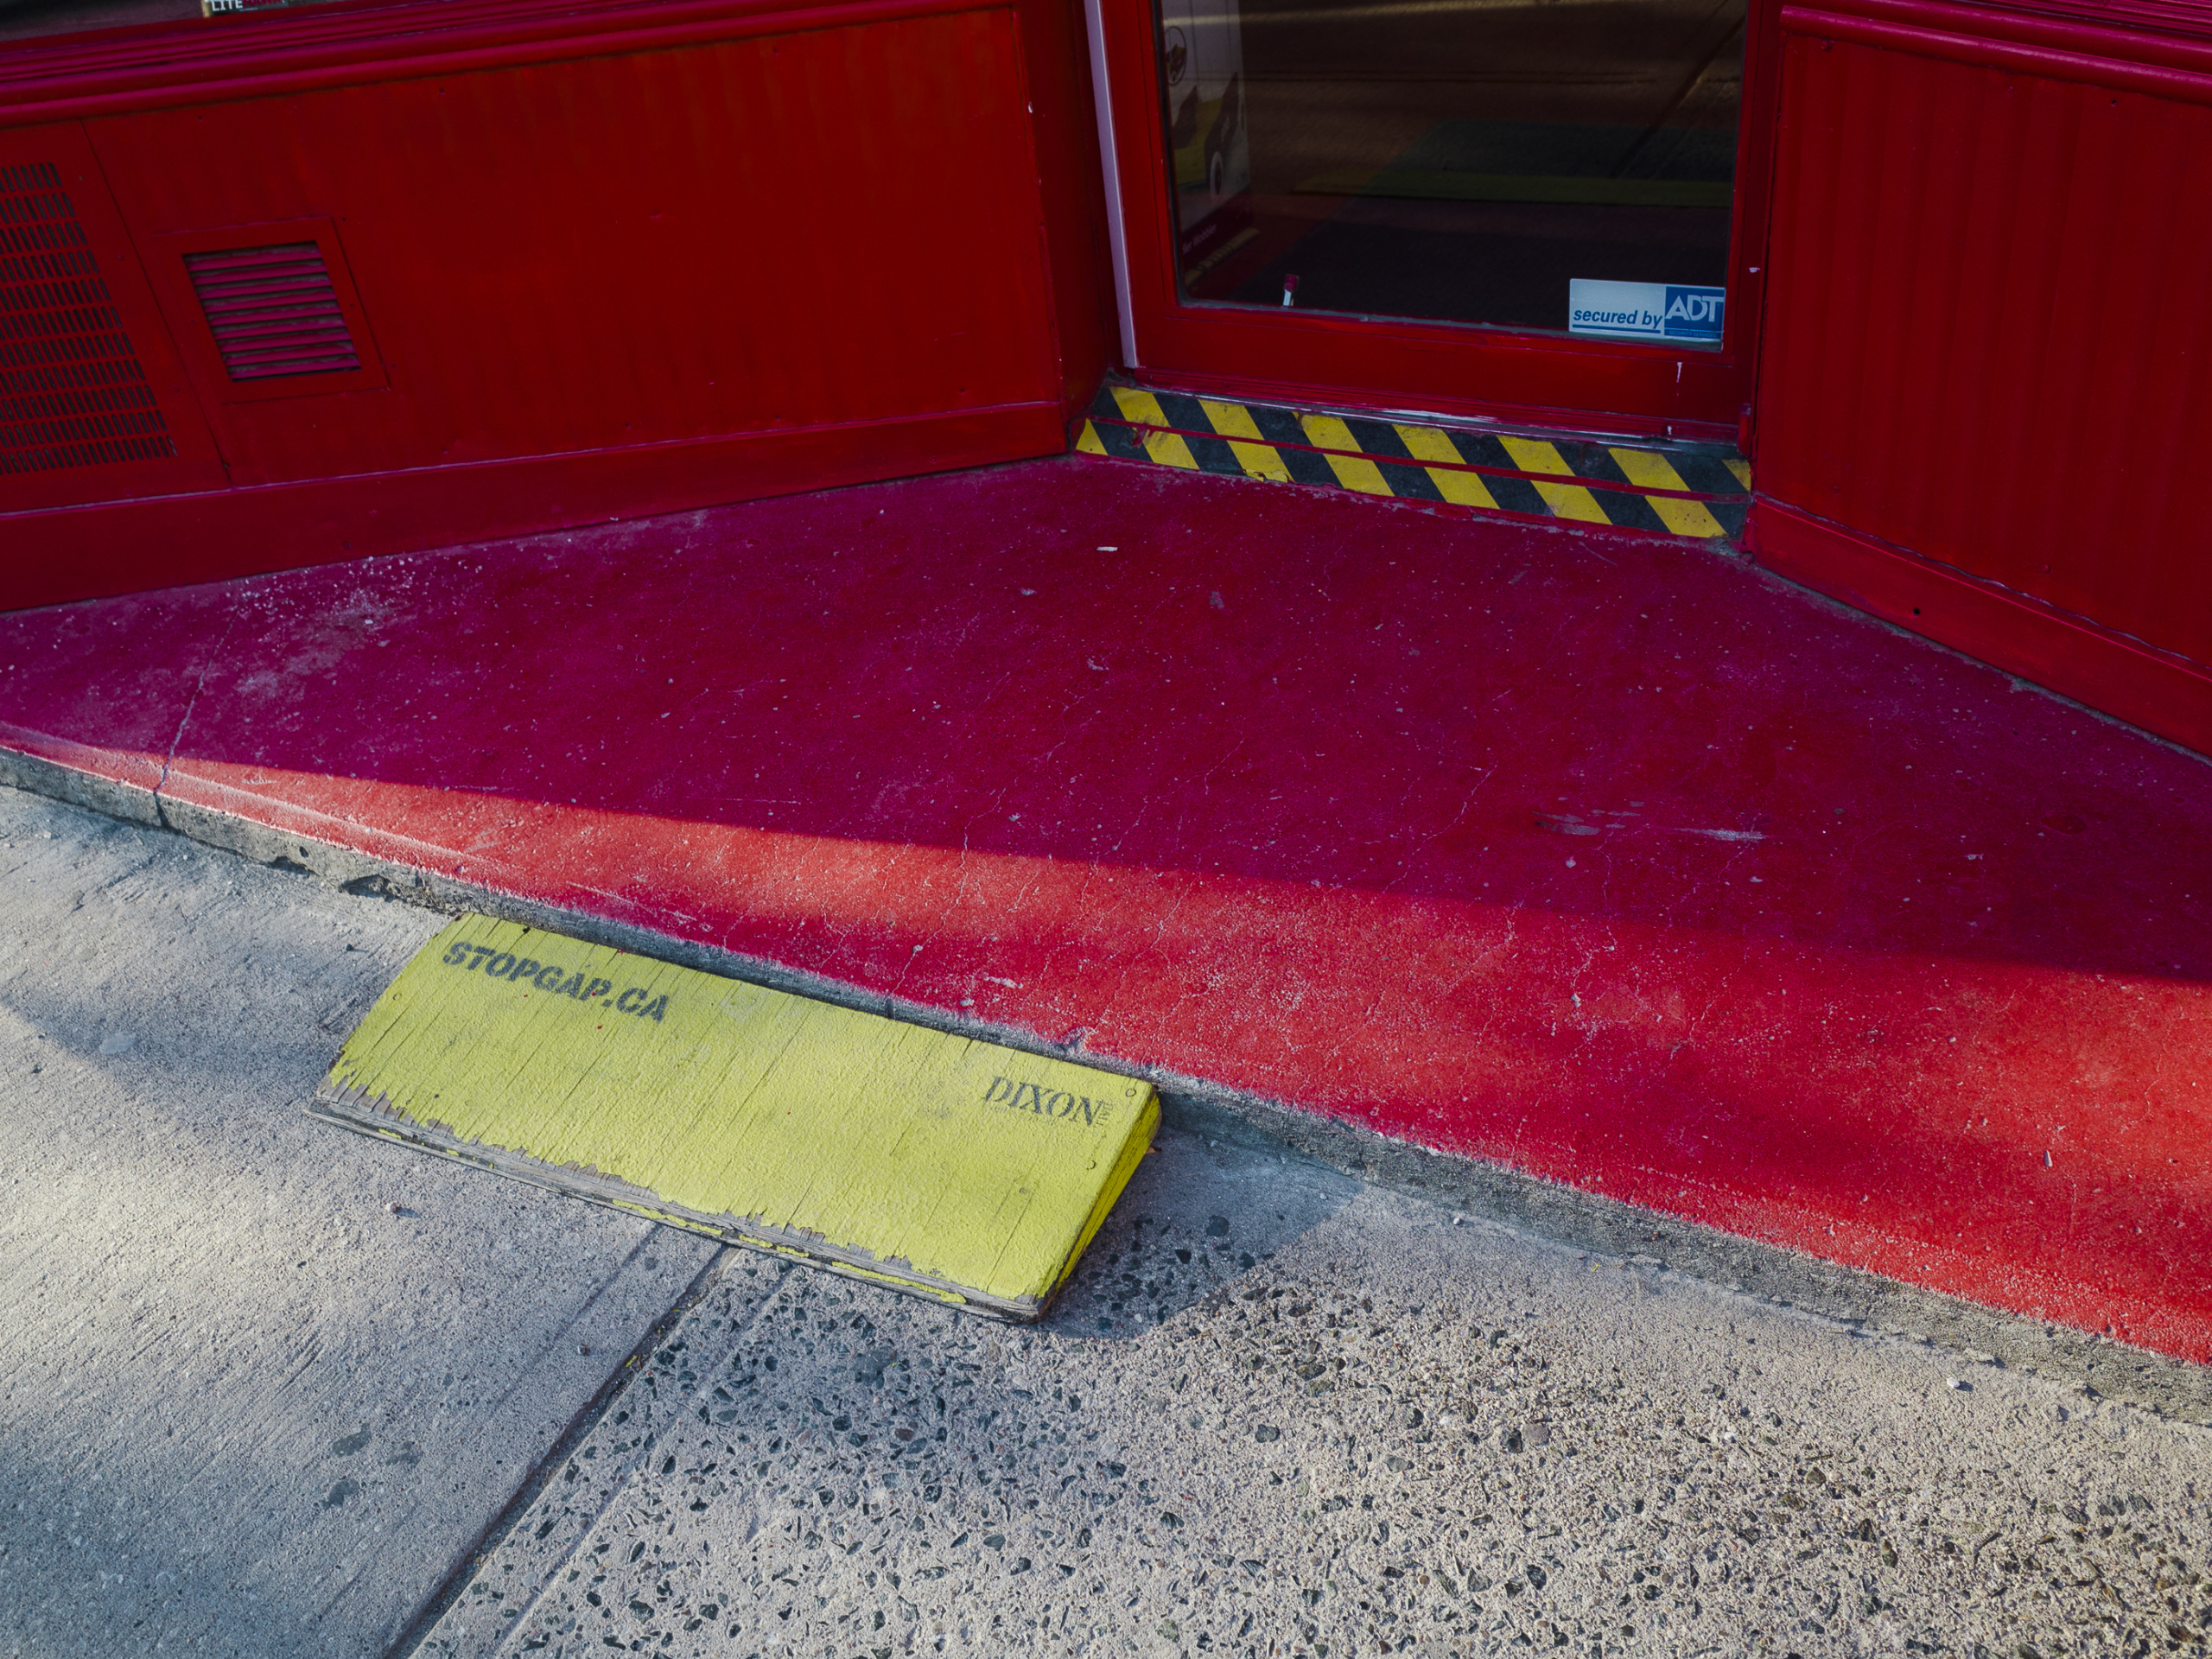 Atanas Bozdarov and Craig Rodmore, Every Ramp on Queen Street West (small yellow, caution tape, red), 2020